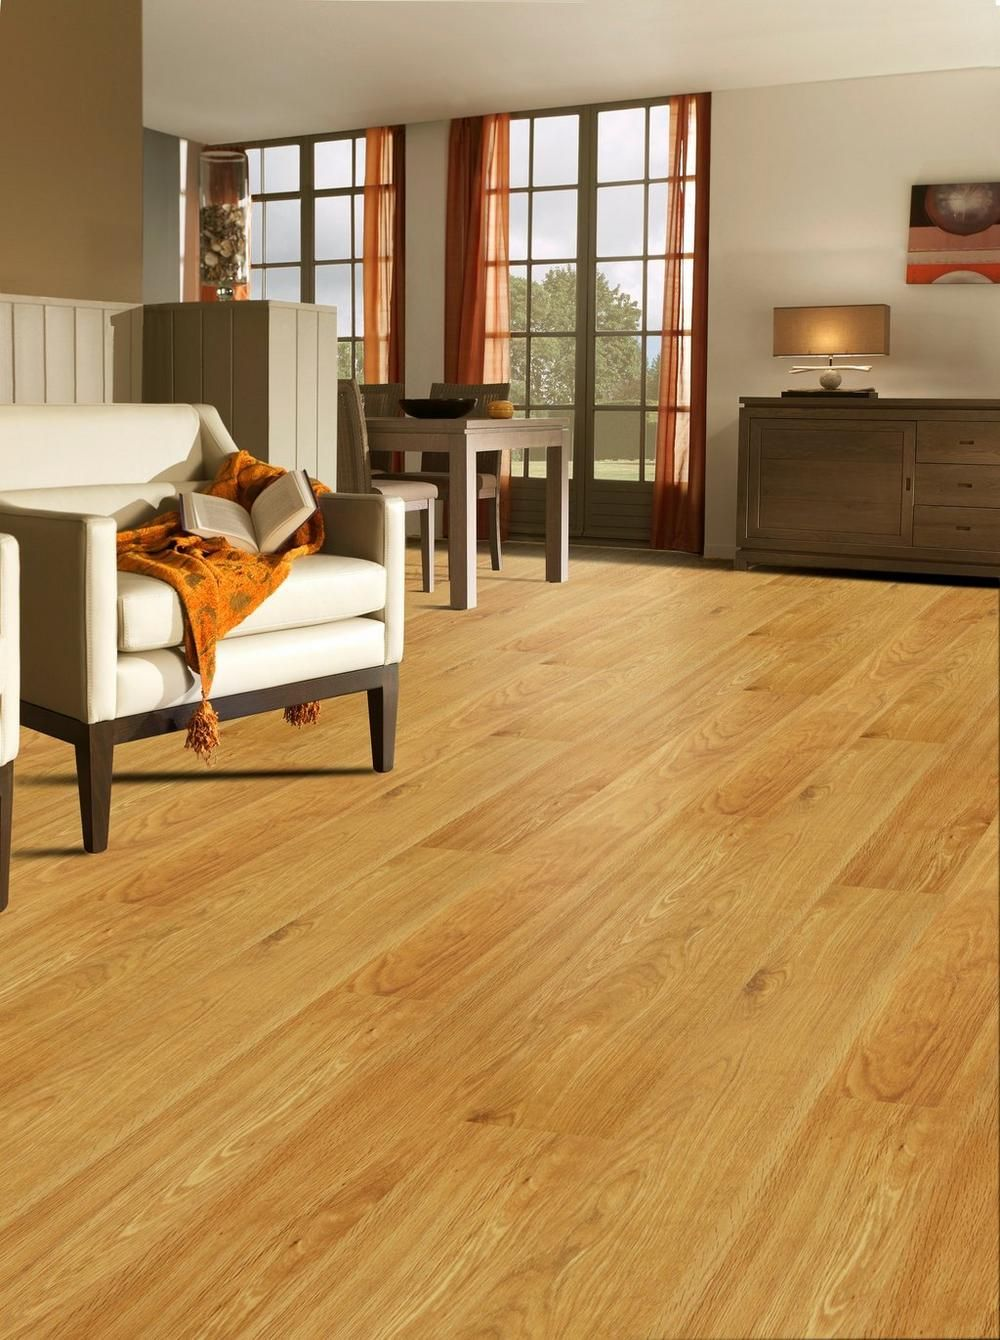 Natural Rustic Oak Smooth Engineered Hardwood (With images